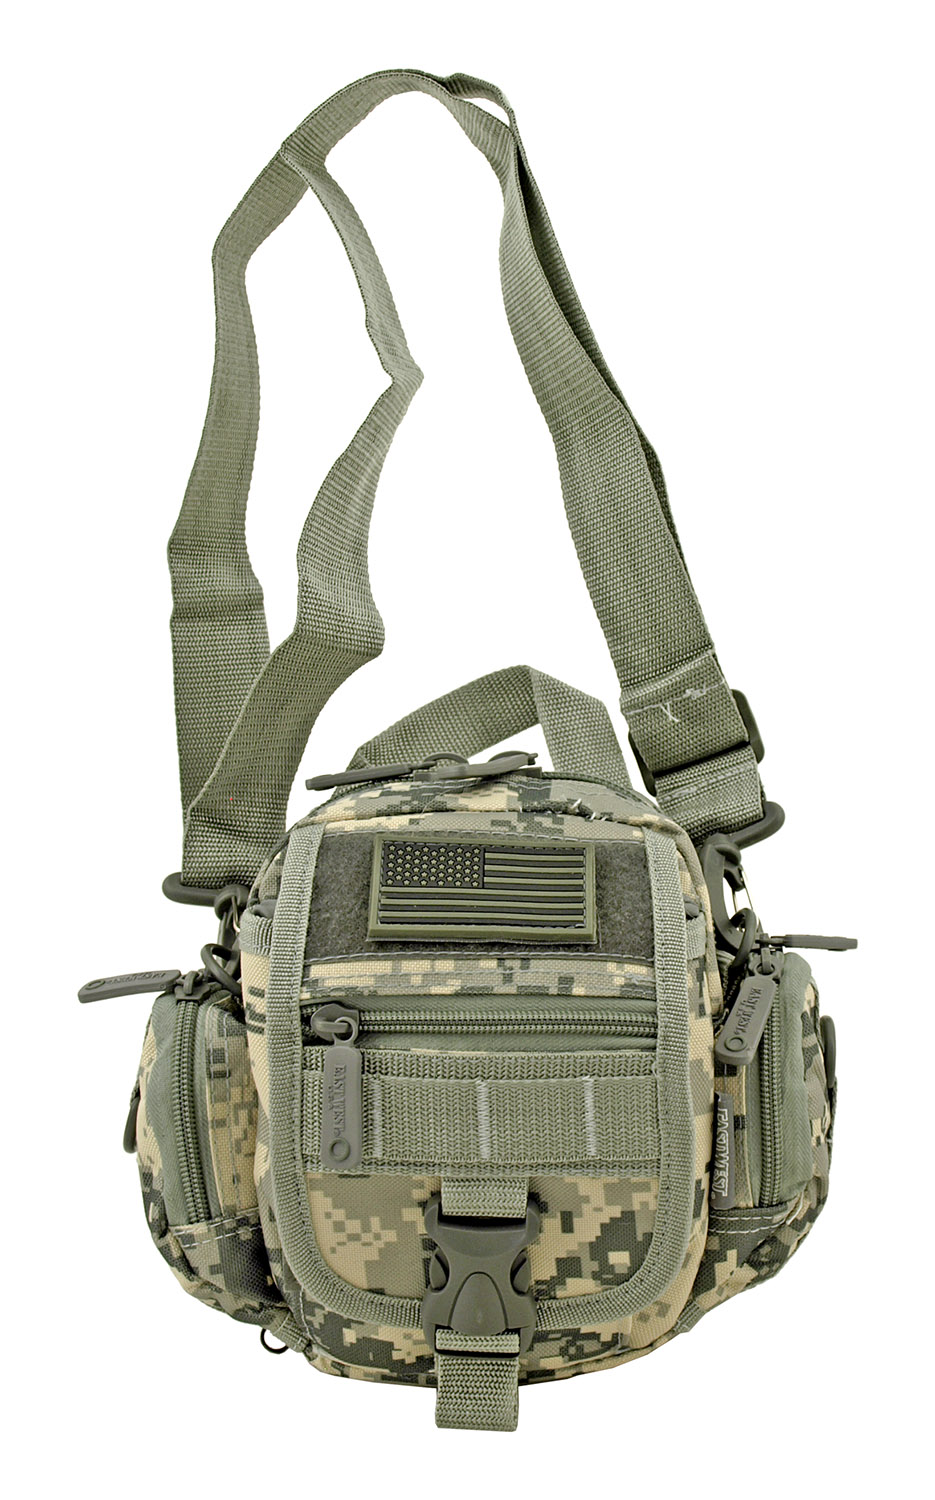 Multi-Functional Tactical Utility Backpack Fanny Pack - Digital Camo